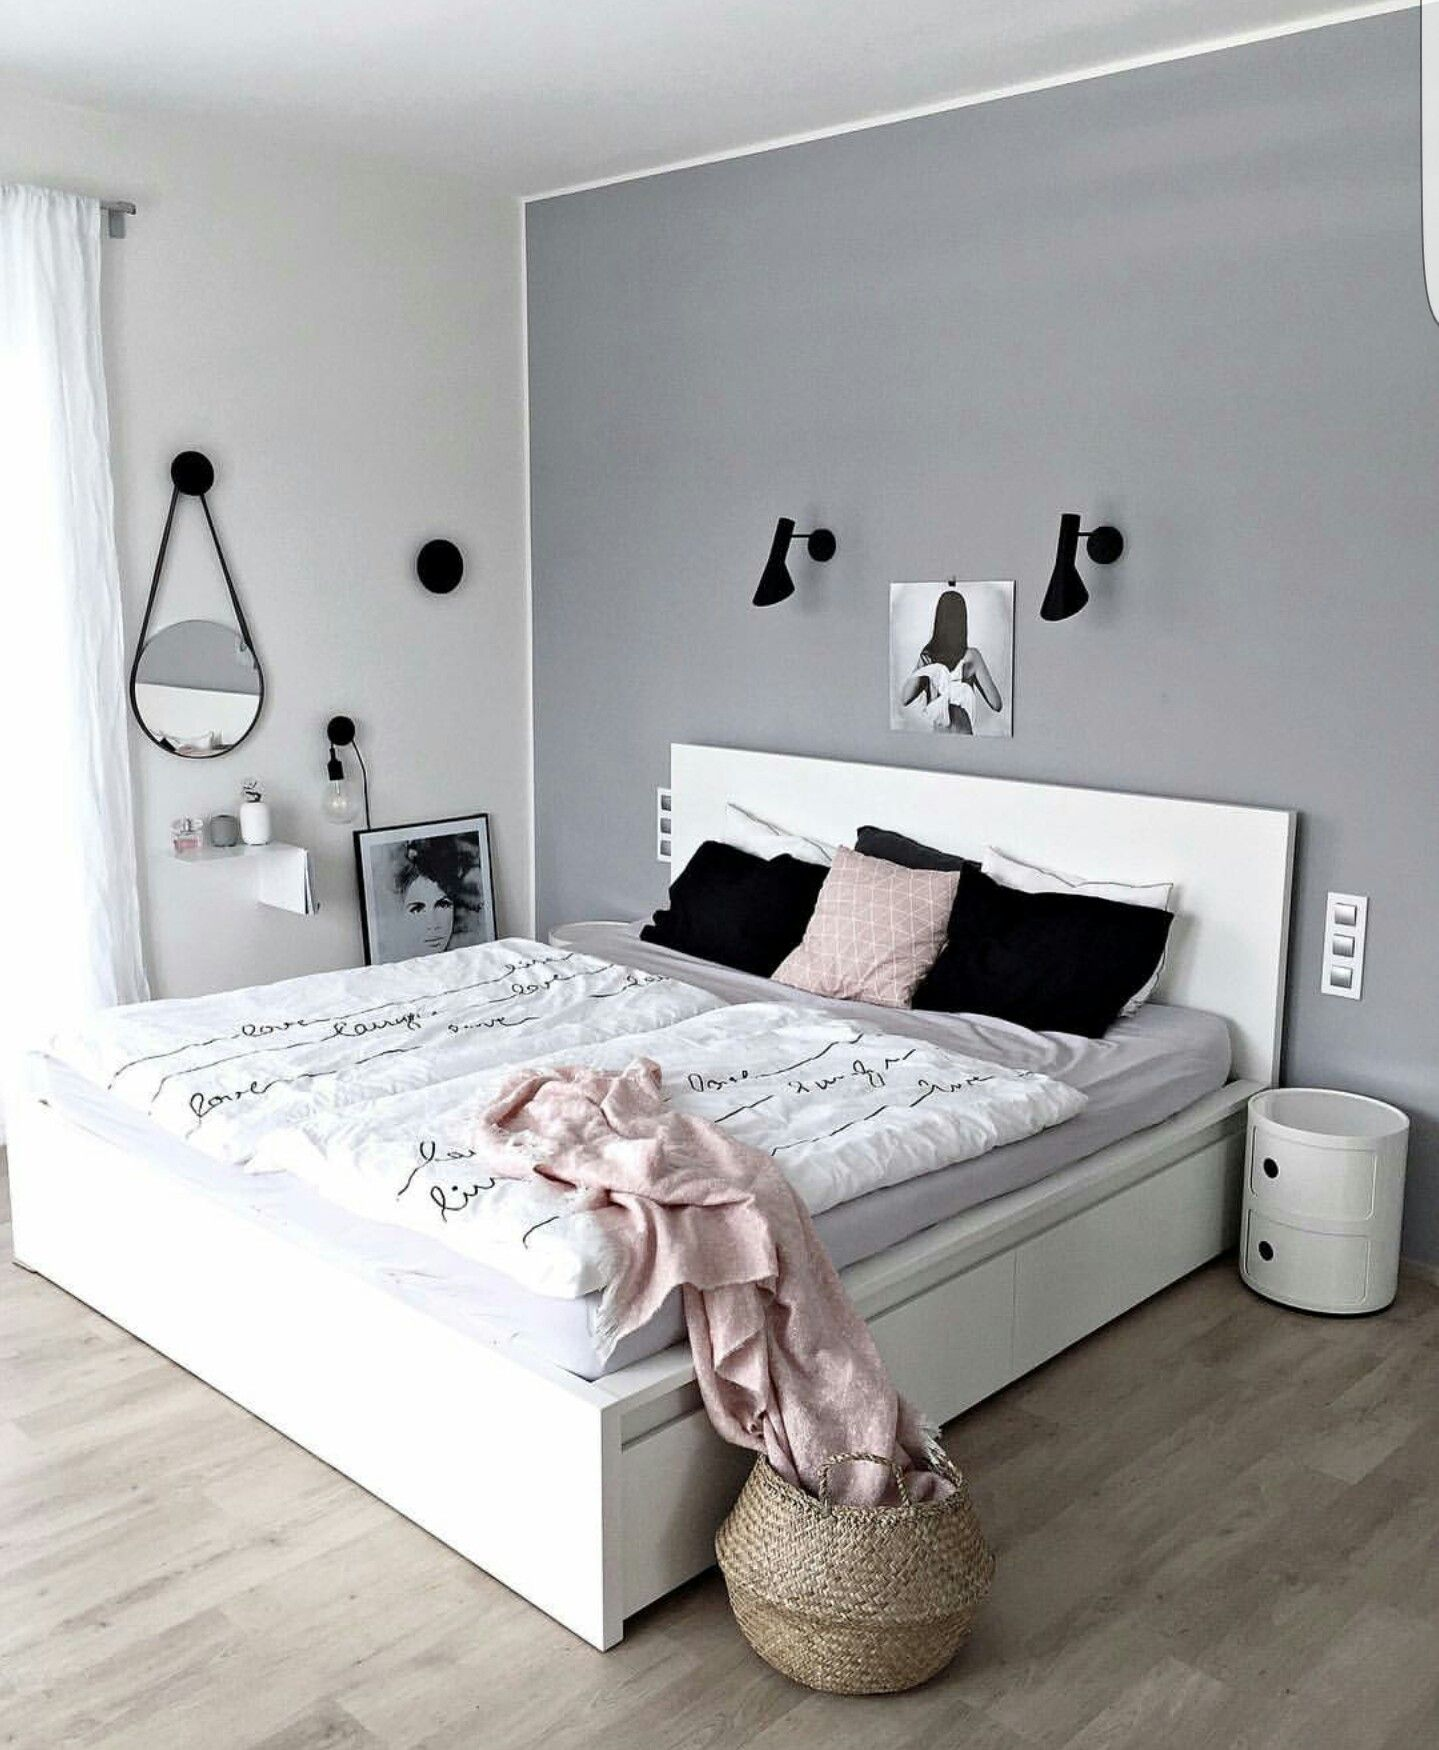 pin von sylvie vannitsem auf slaapkamer pinterest schlafzimmer ideen moderne einrichtung. Black Bedroom Furniture Sets. Home Design Ideas